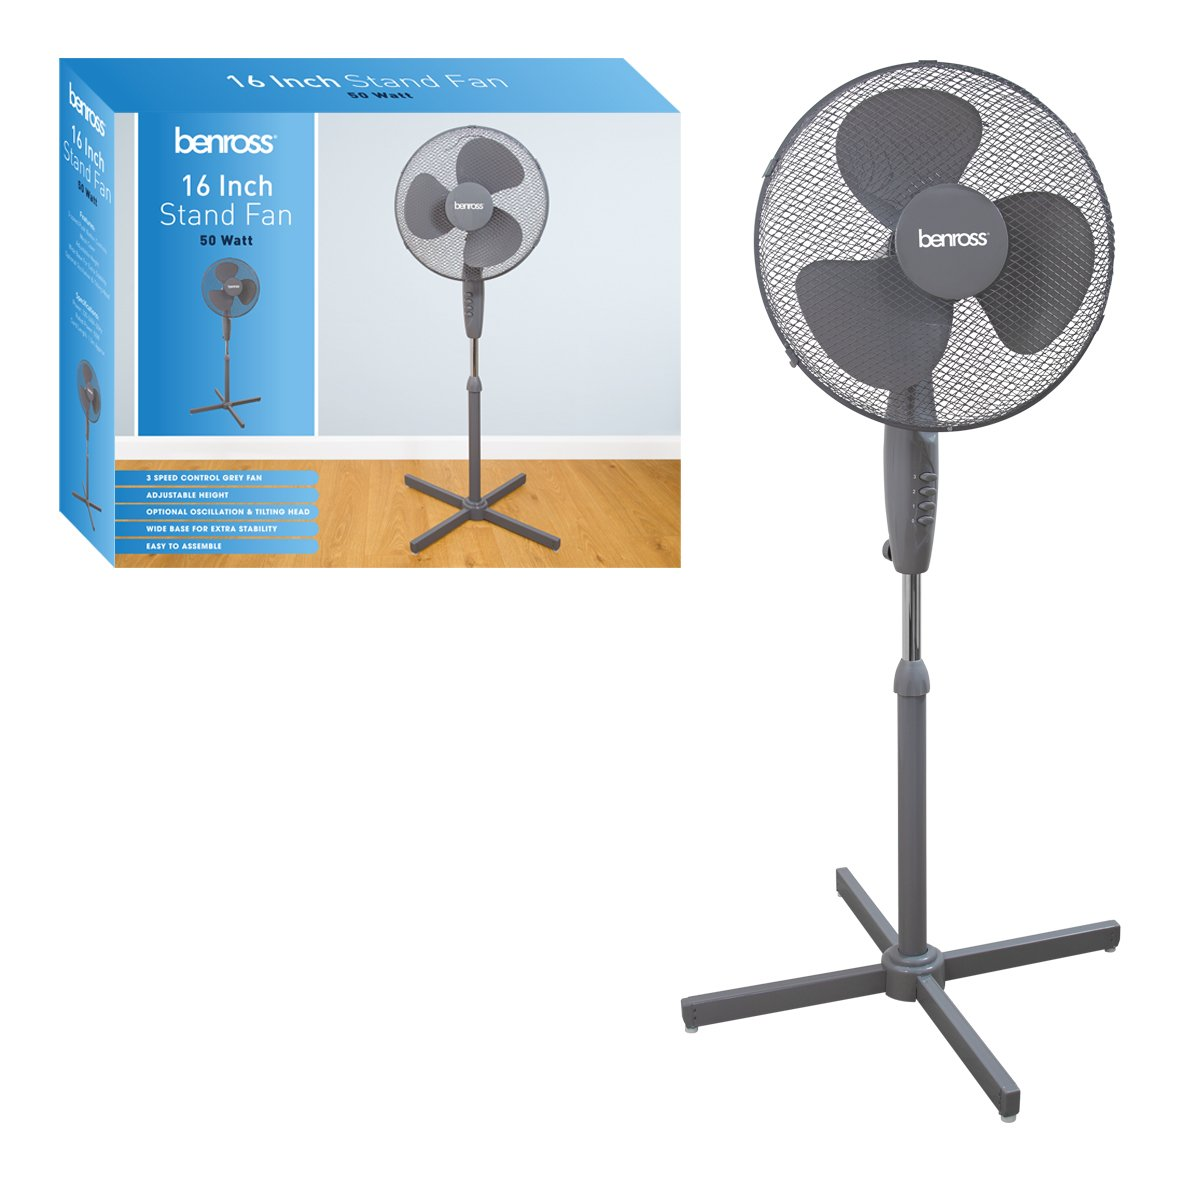 Benross 43840 Adjustable Oscillating 3-Speed Stand Fan, 50 W, Grey Benross Marketing Ltd